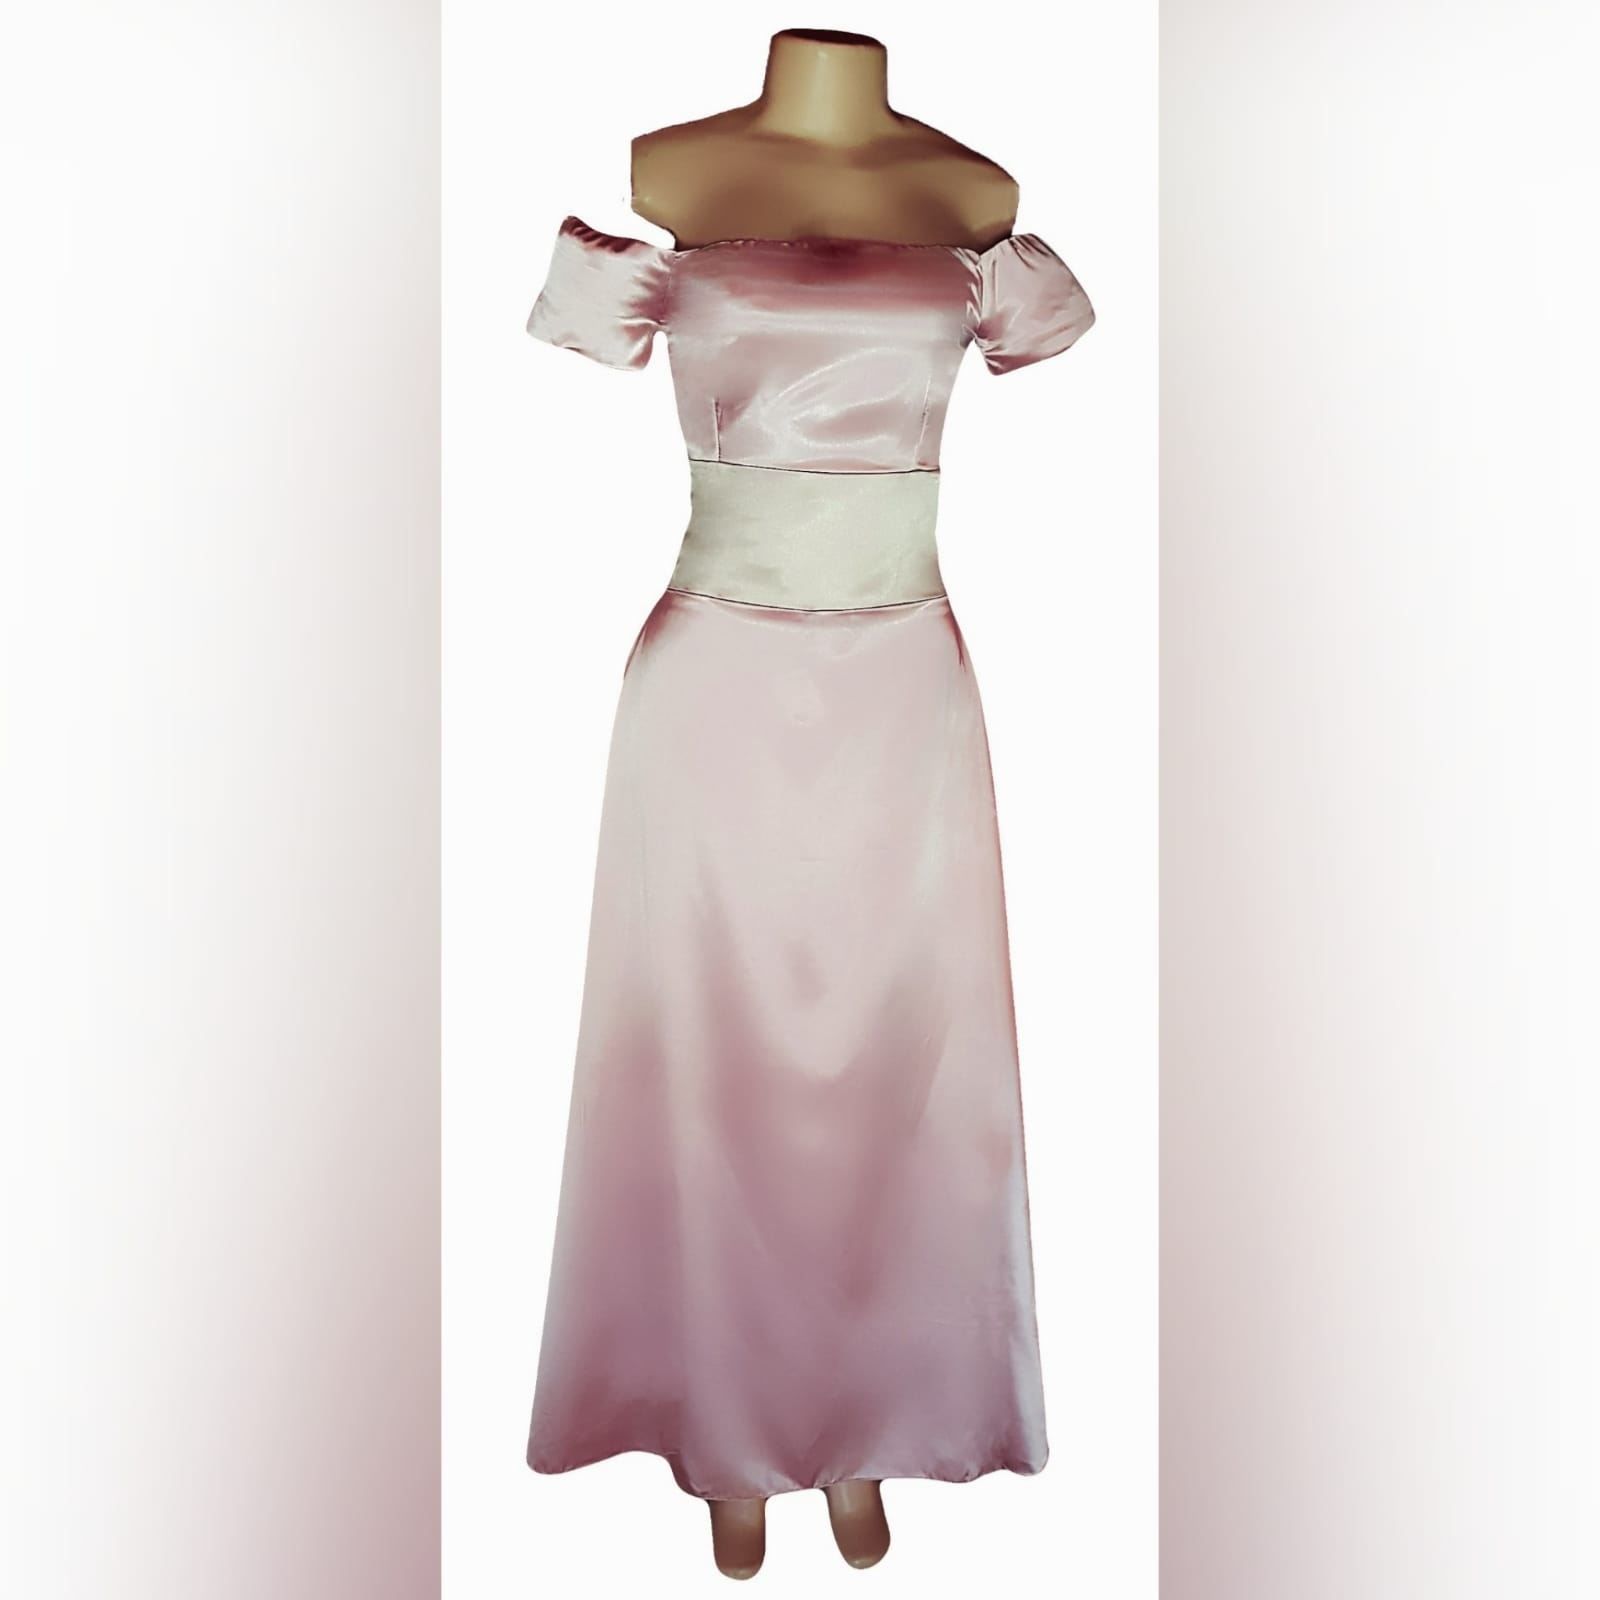 An elegant simple and sophisticated pink and champagne formal dress 9 an elegant, simple and sophisticated pink and champagne formal dress, created for a wedding ceremony. This design was created with a light wear satin, off-shoulder neckline and short sleeves, and a wide champagne belt. Created for a client in south africa.